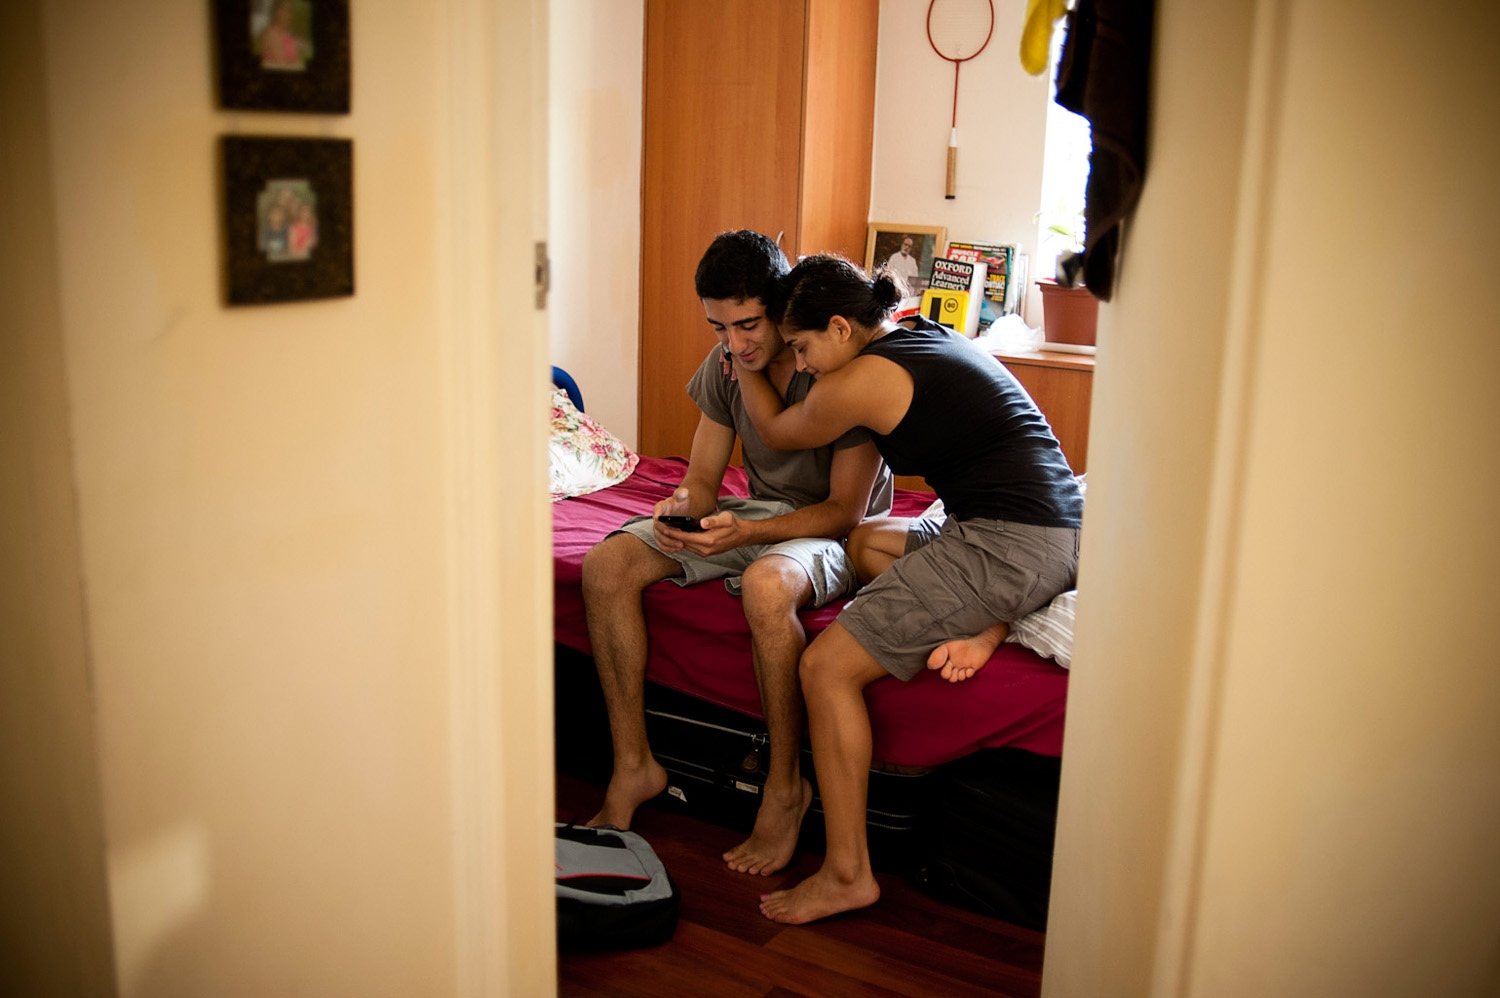 SYDNEY, AUSTRALIA - 29/01/12 - Parastou embraces her brother in his room. Soroush has now moved to Sydney to go to high school and skip the military service in Iran.